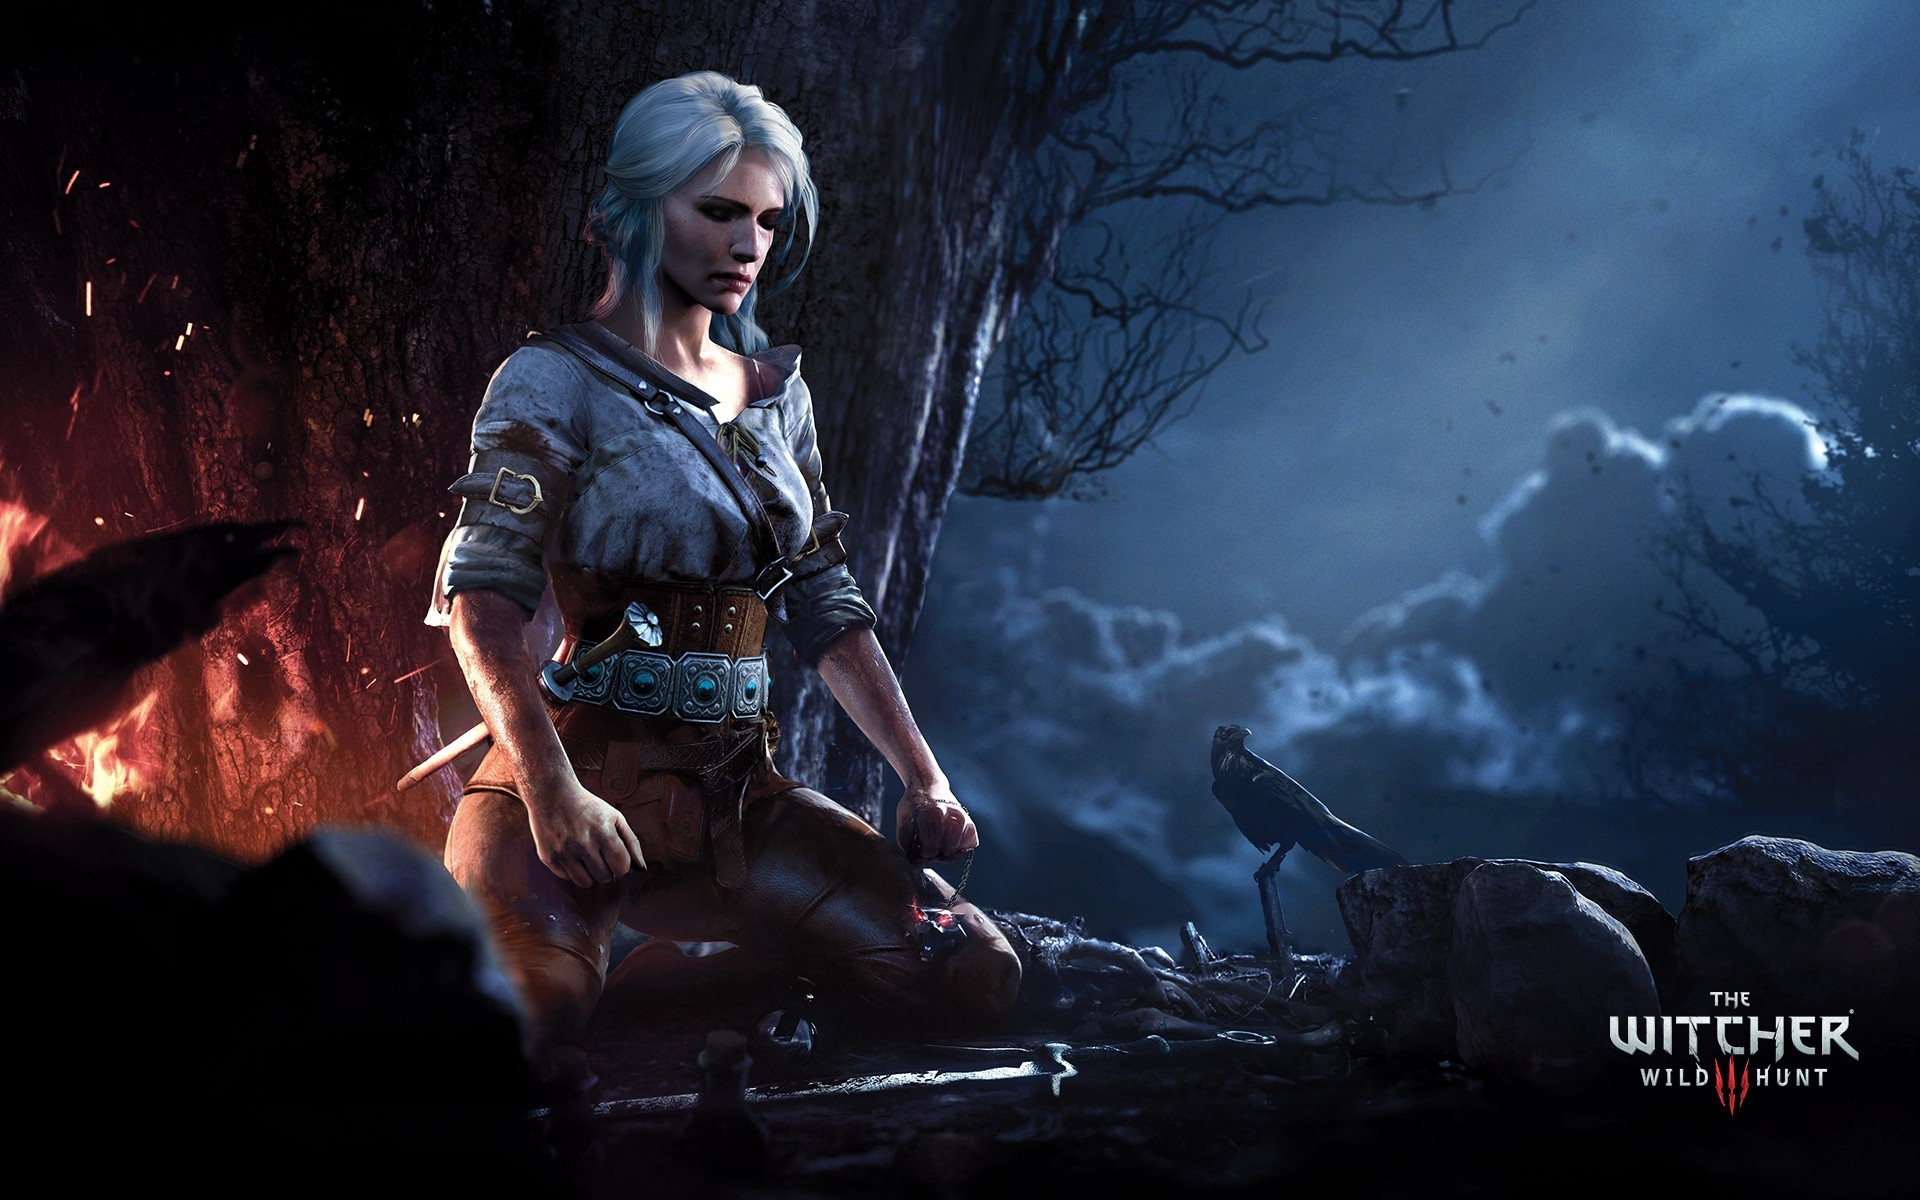 Wallpaper Ciri from The Witcher 3 Wild Hunt